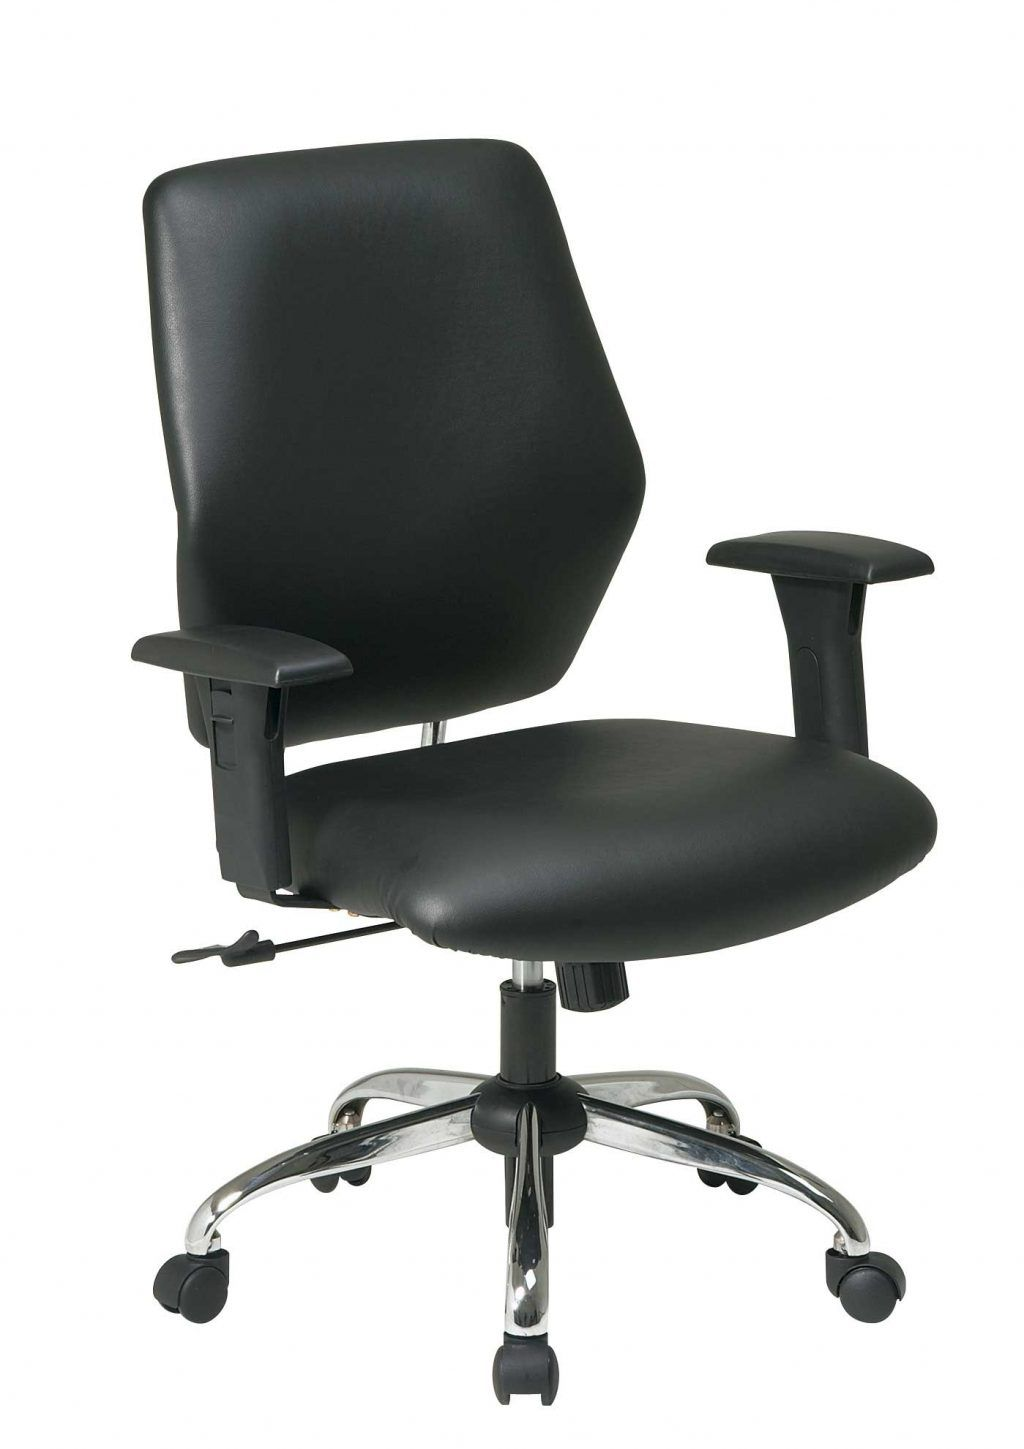 Black office chair clipart image free Office Chair Clipart | Office Chair image free